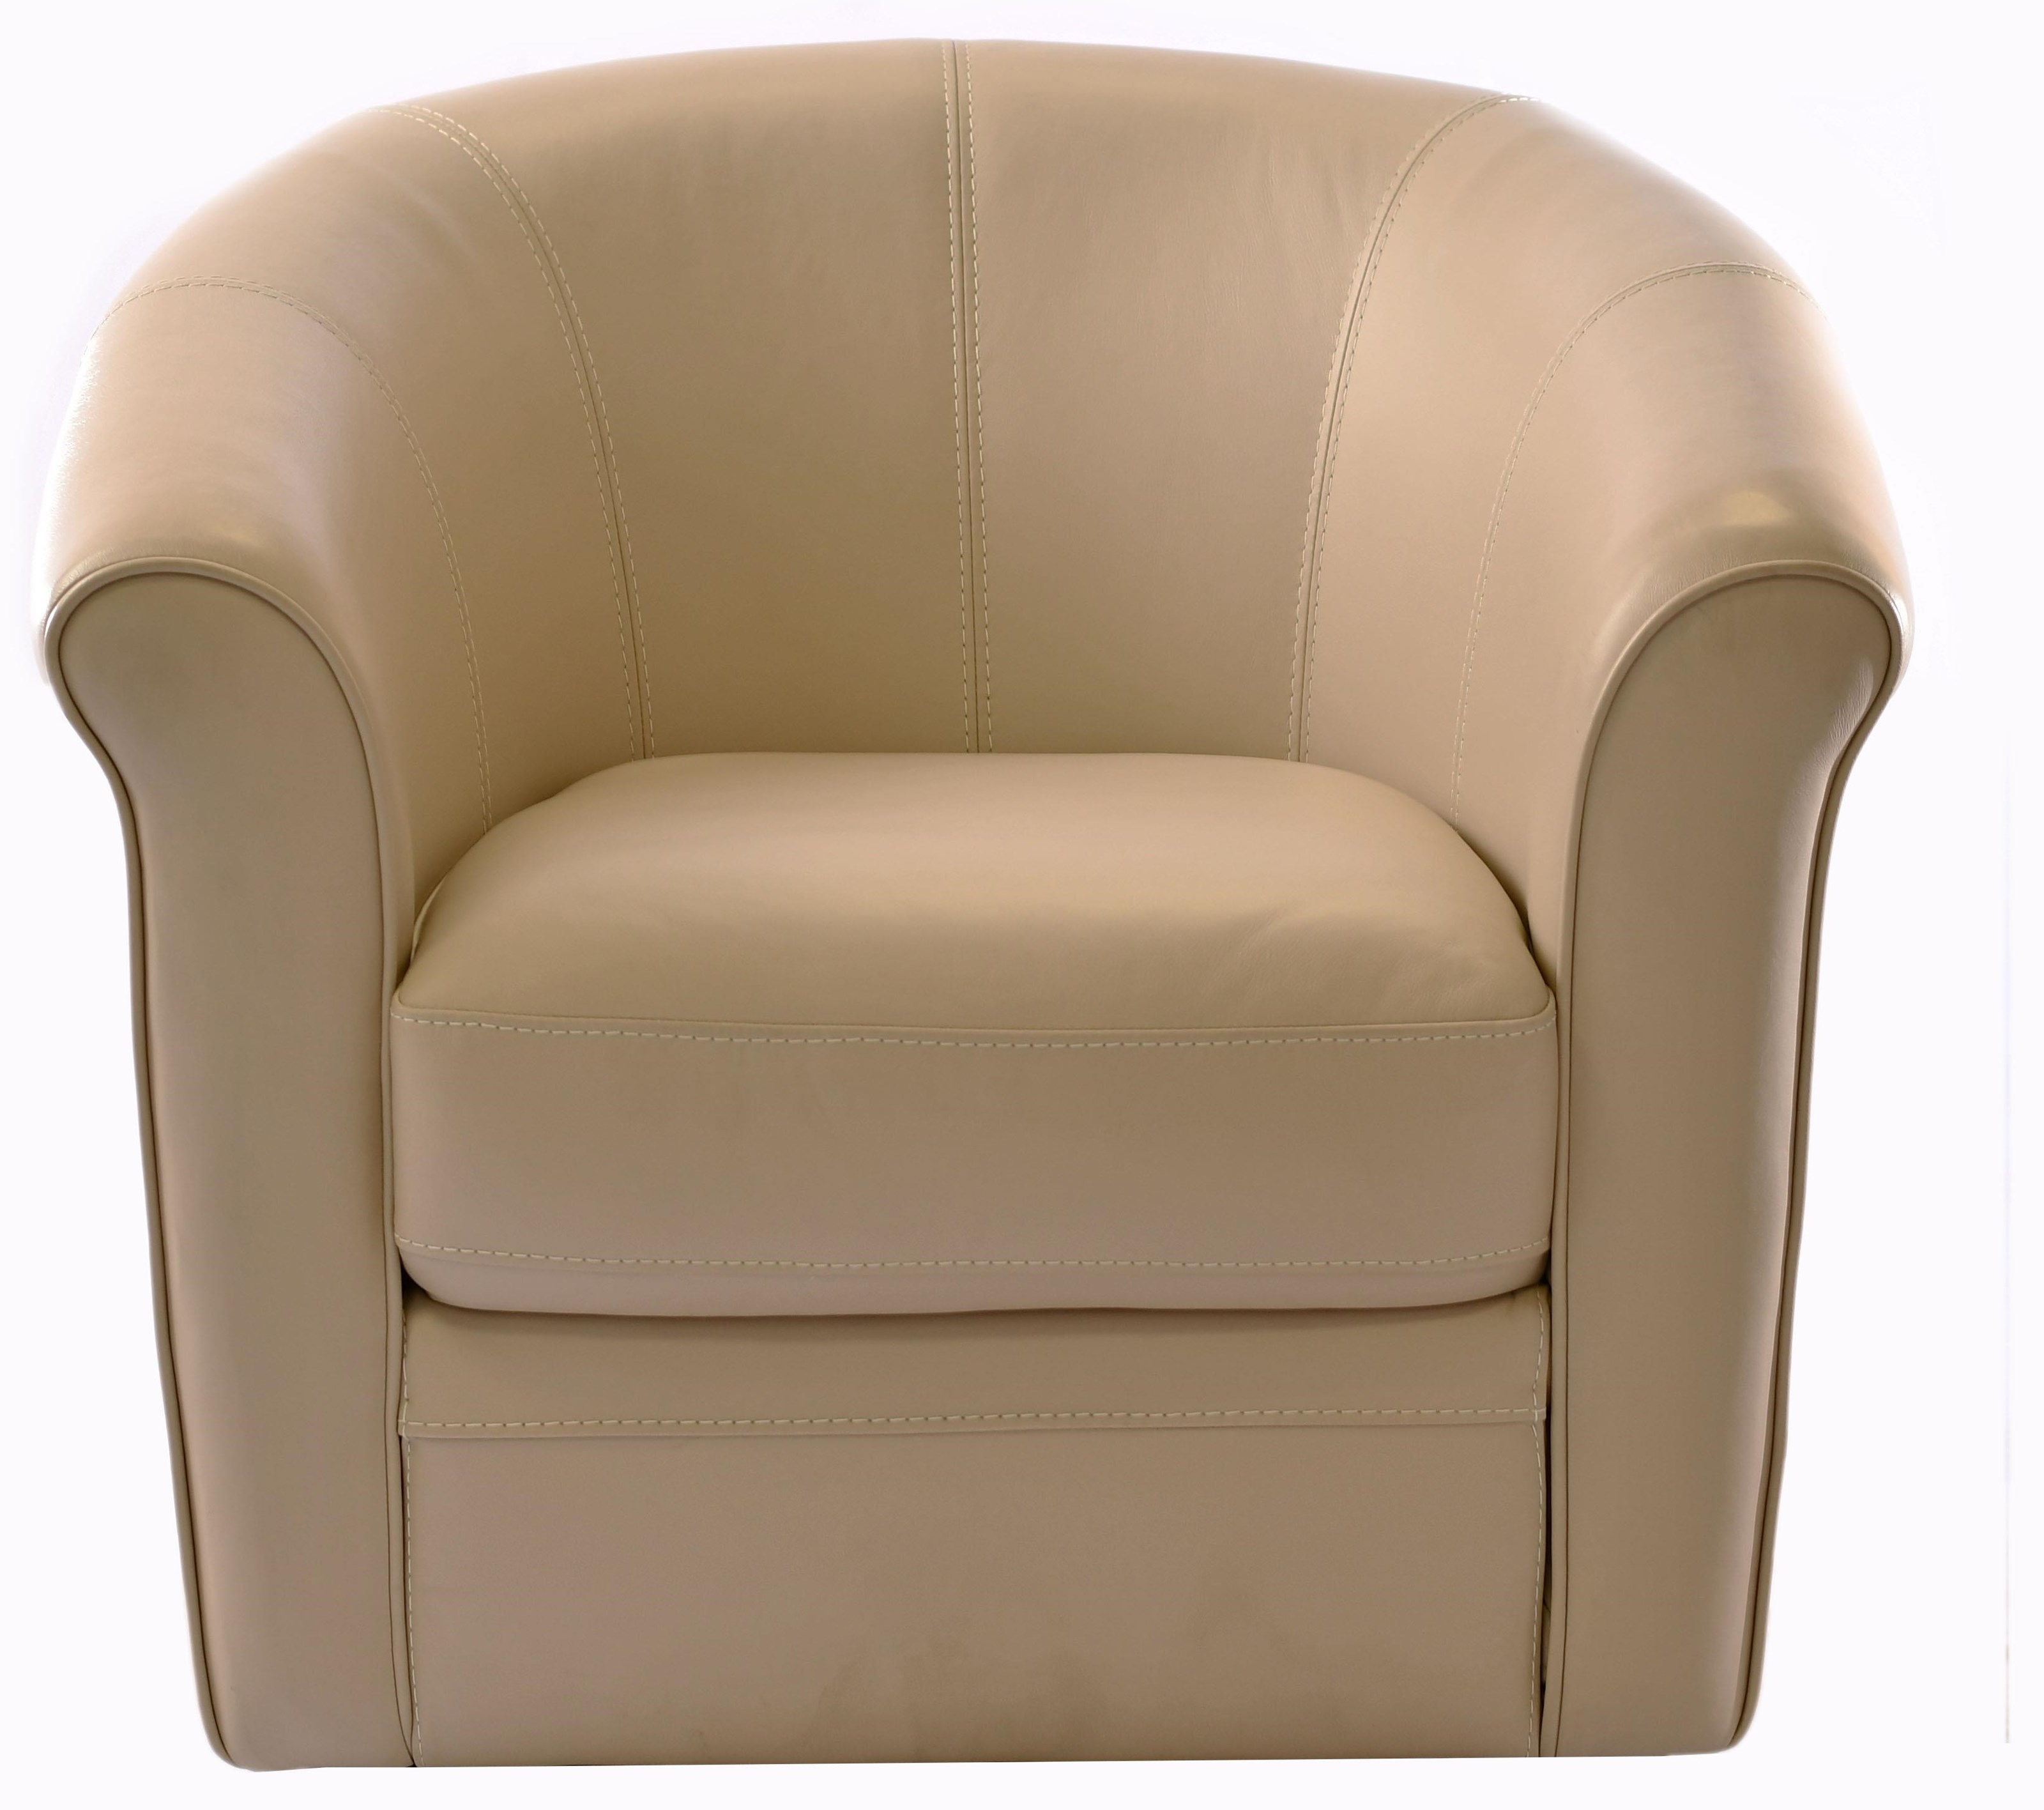 1100A Leather Swivel Chair Swivel Chair at Bennett's Furniture and Mattresses